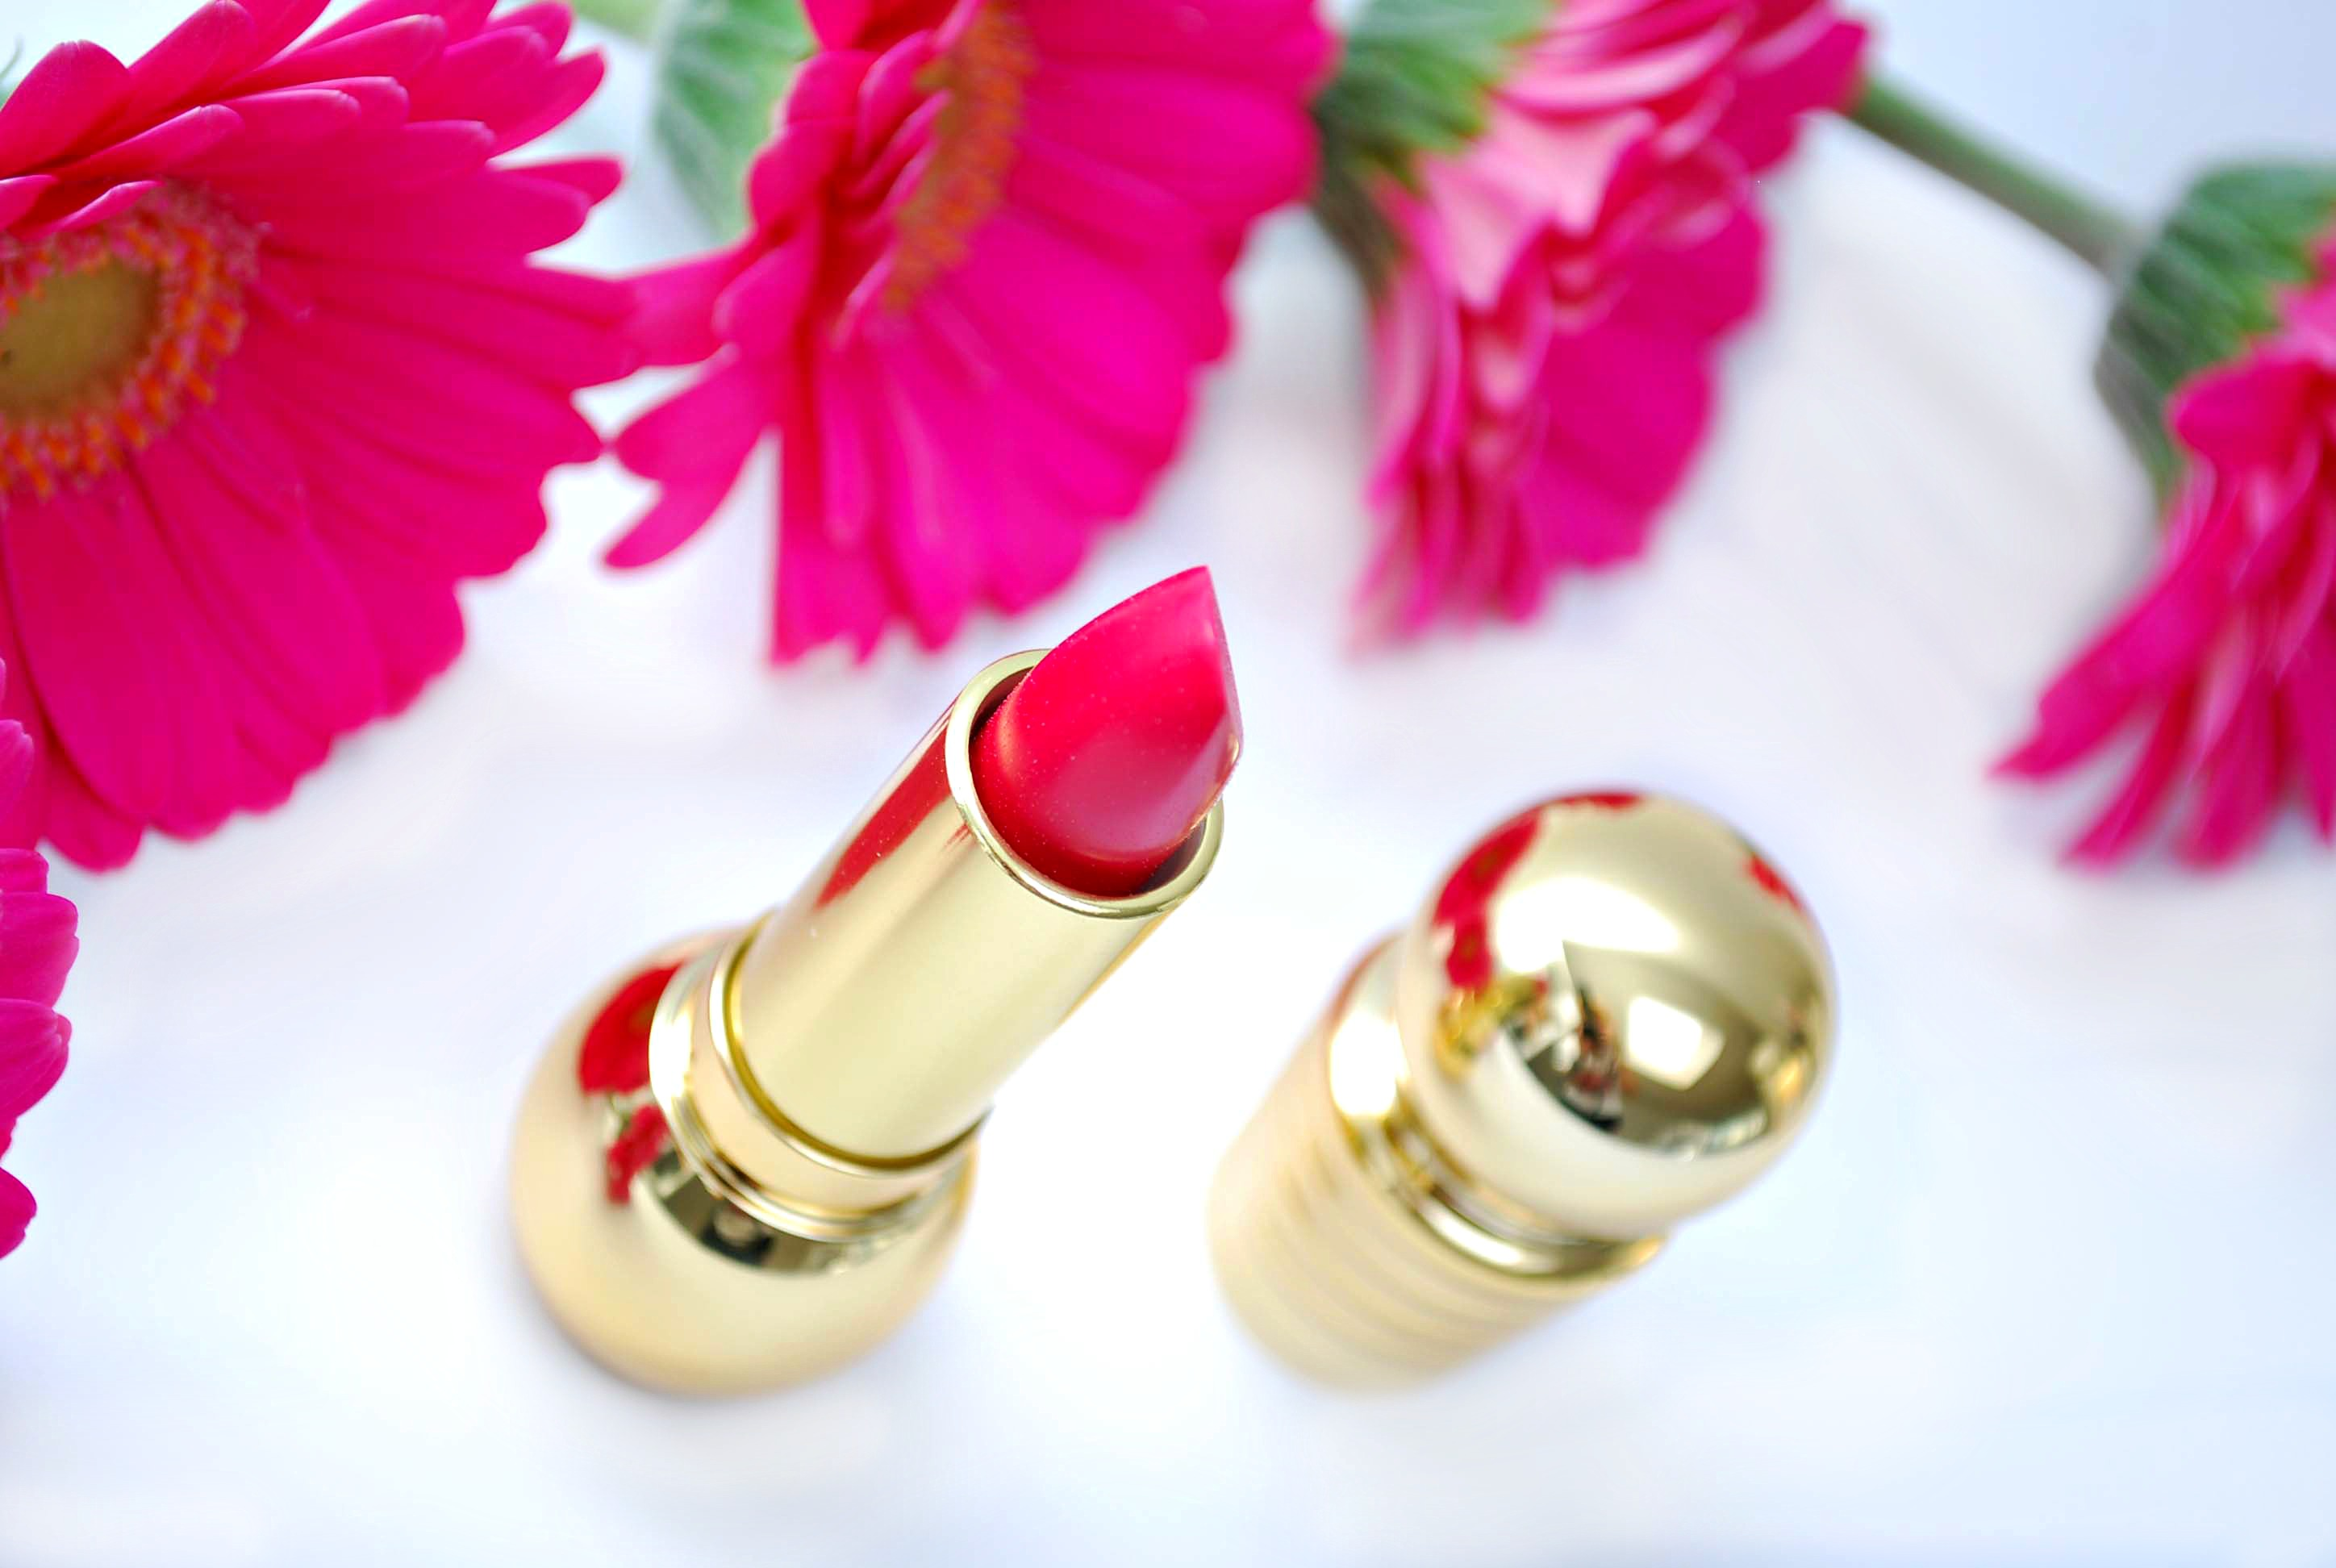 review swatch dior lipstick hollywood